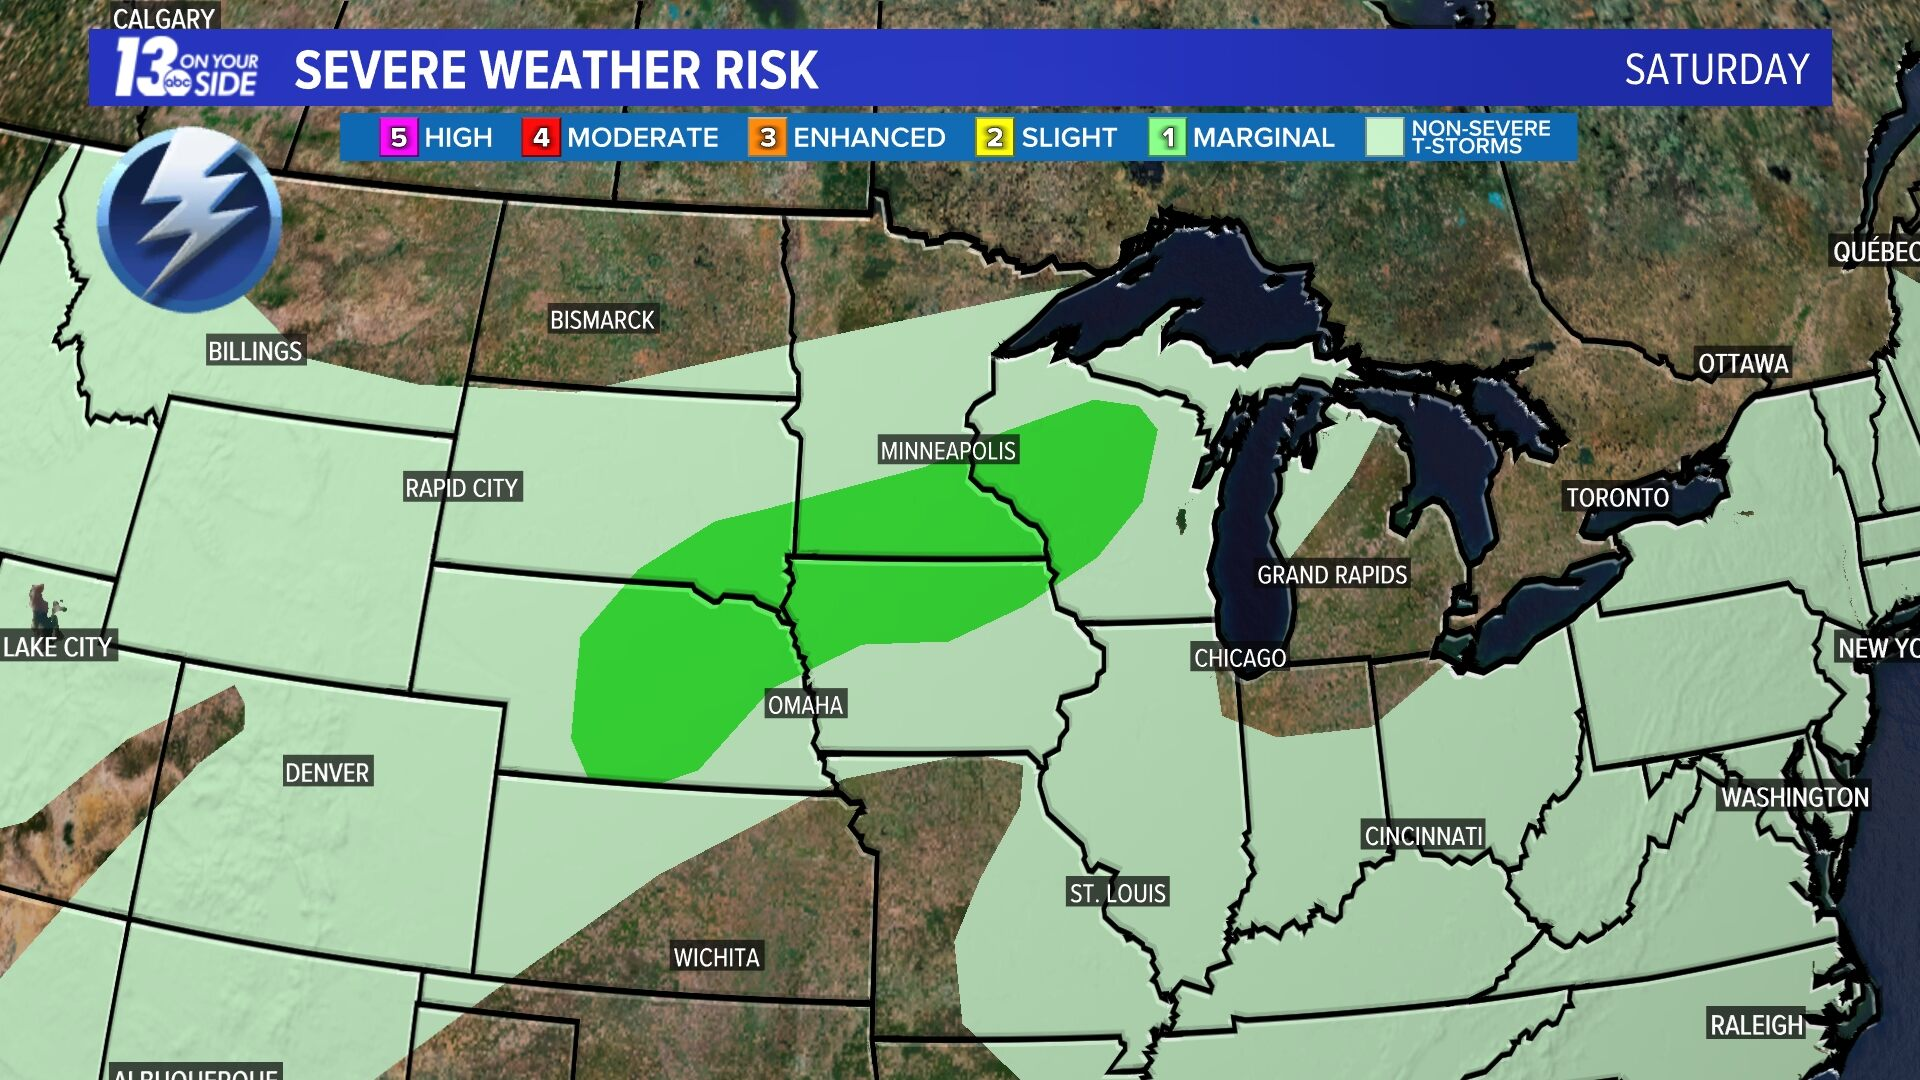 Day 2 Severe Weather Risk